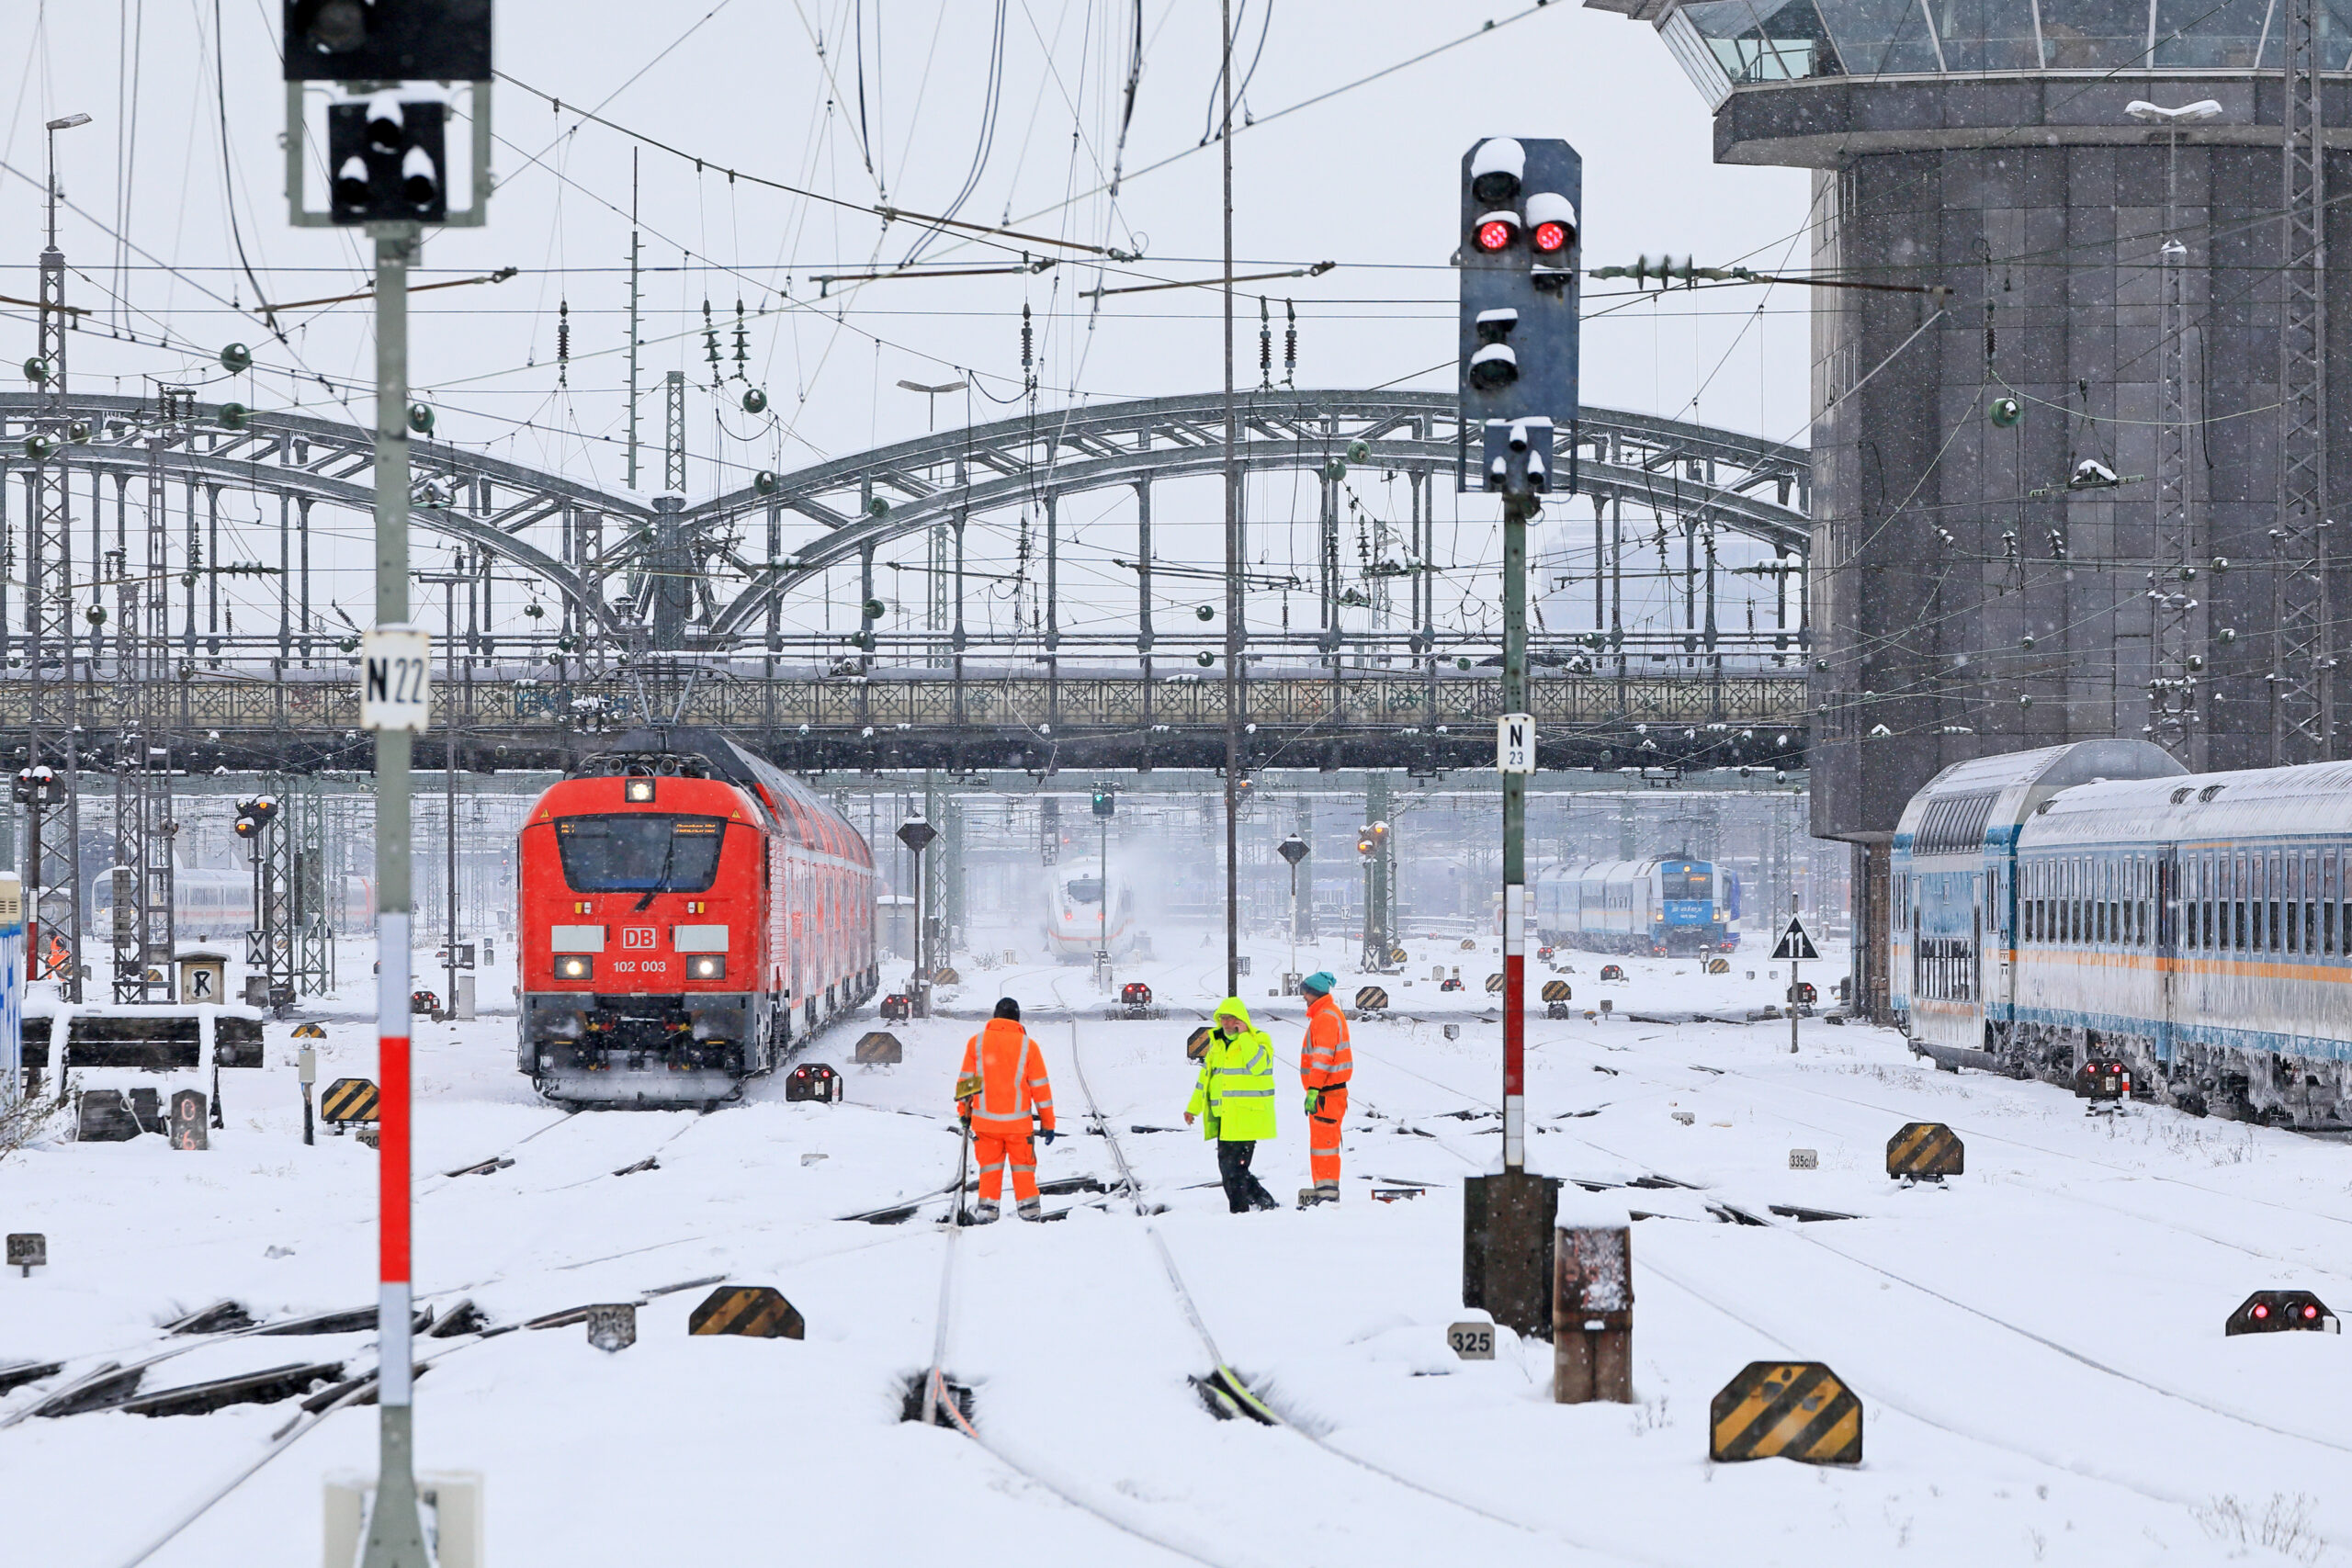 Munich Central Station: despite functioning points heaters railway workers have to remove the snow from the points because of the heavy snowfall